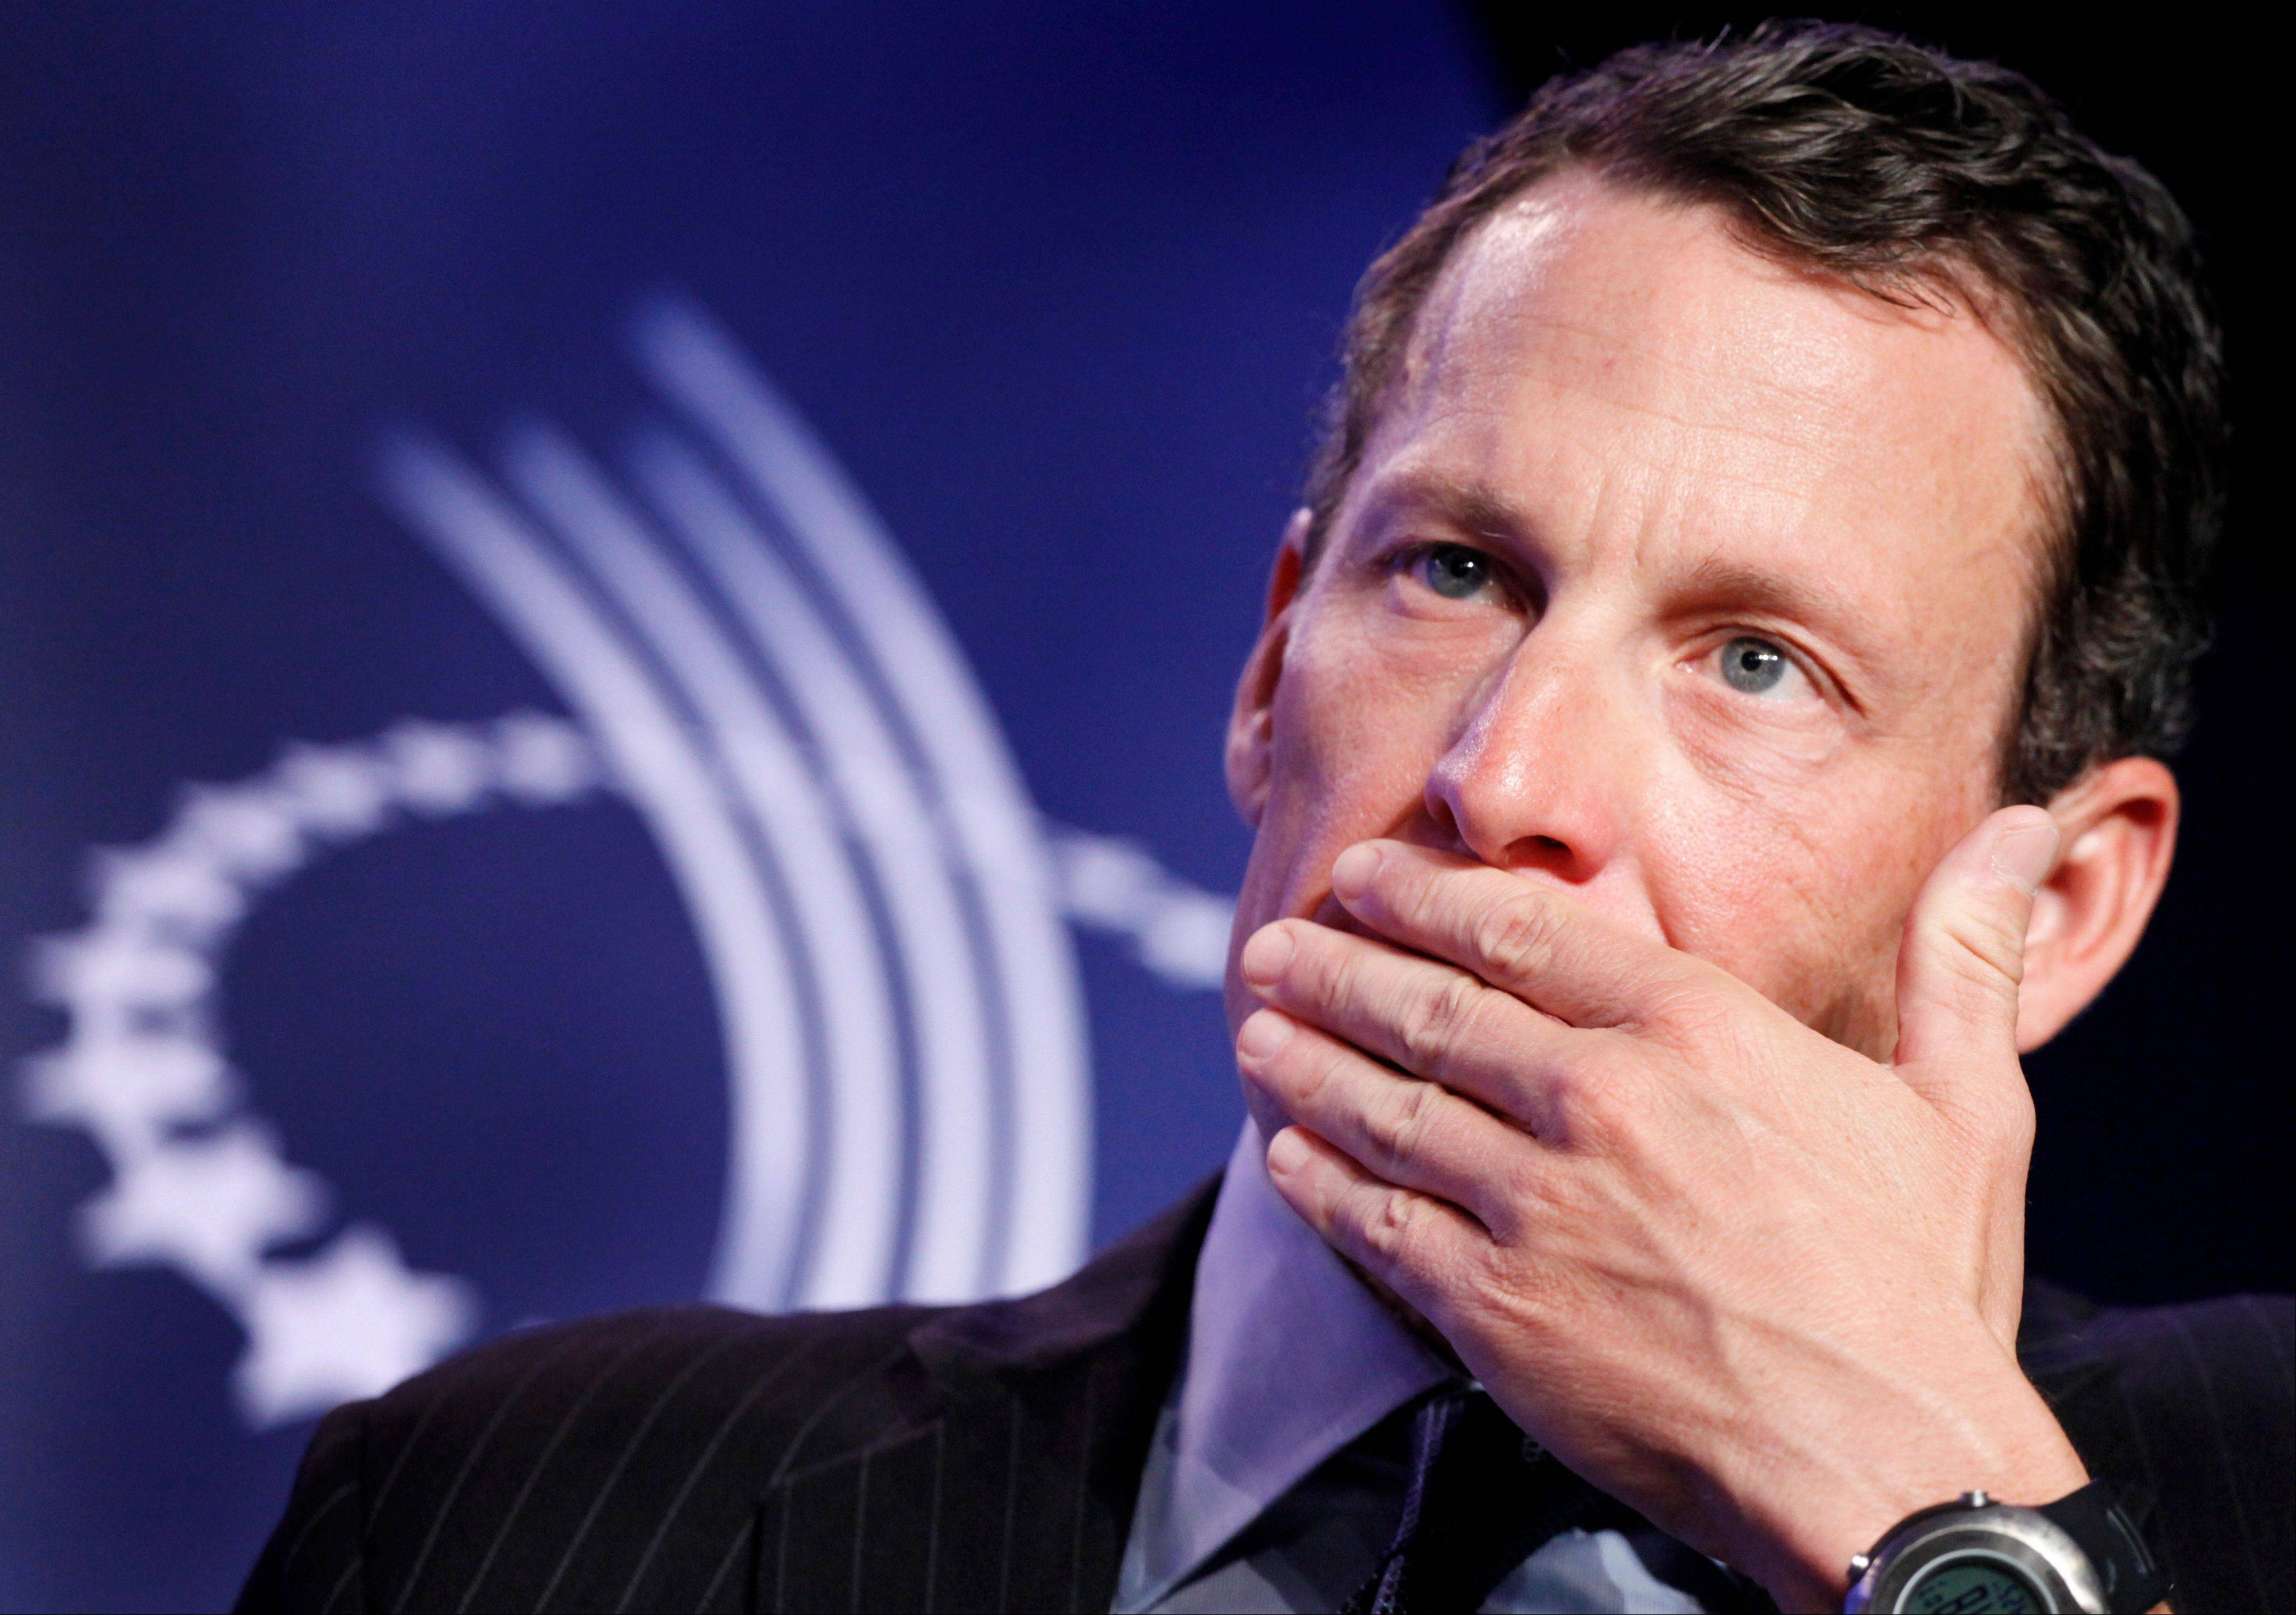 Lance Armstrong is facing a Wednesday deadline to decide whether he will meet with U.S. Anti-Doping Agency officials and talk with them under oath about what he knows about performance-enhancing drug use in cycling. The agency has said Armstrong's cooperation in its cleanup effort is the only path open to Armstrong if his lifetime ban from sports it to be reduced.